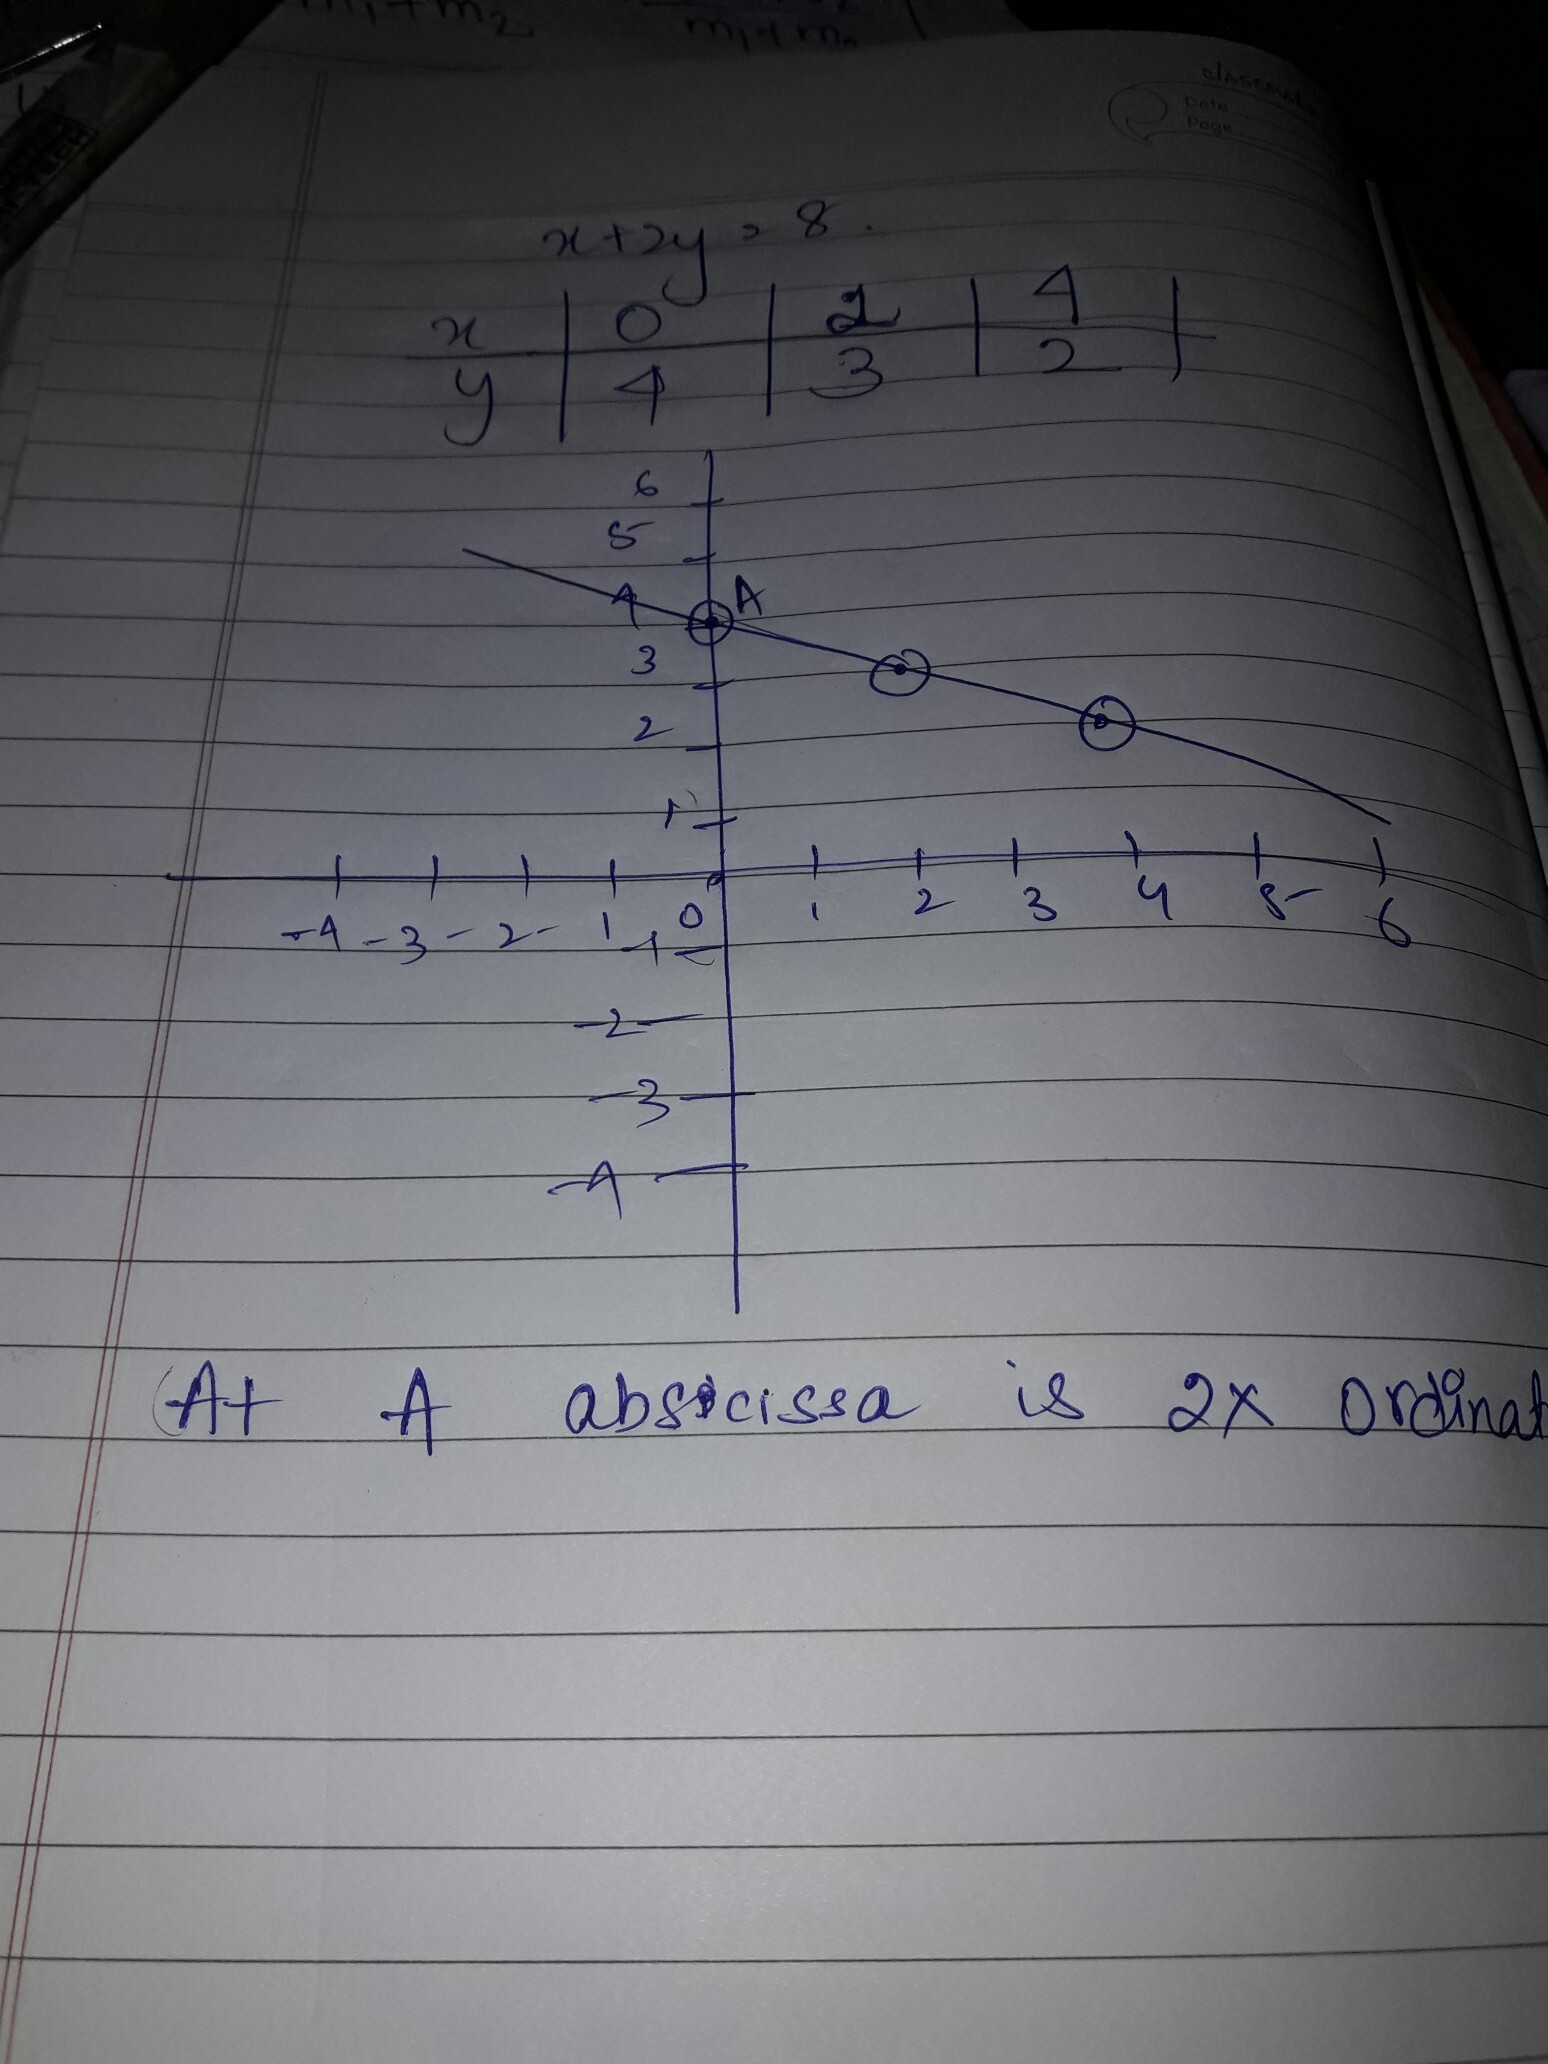 draw the graph of the linear equation x + 2y = 8  and find